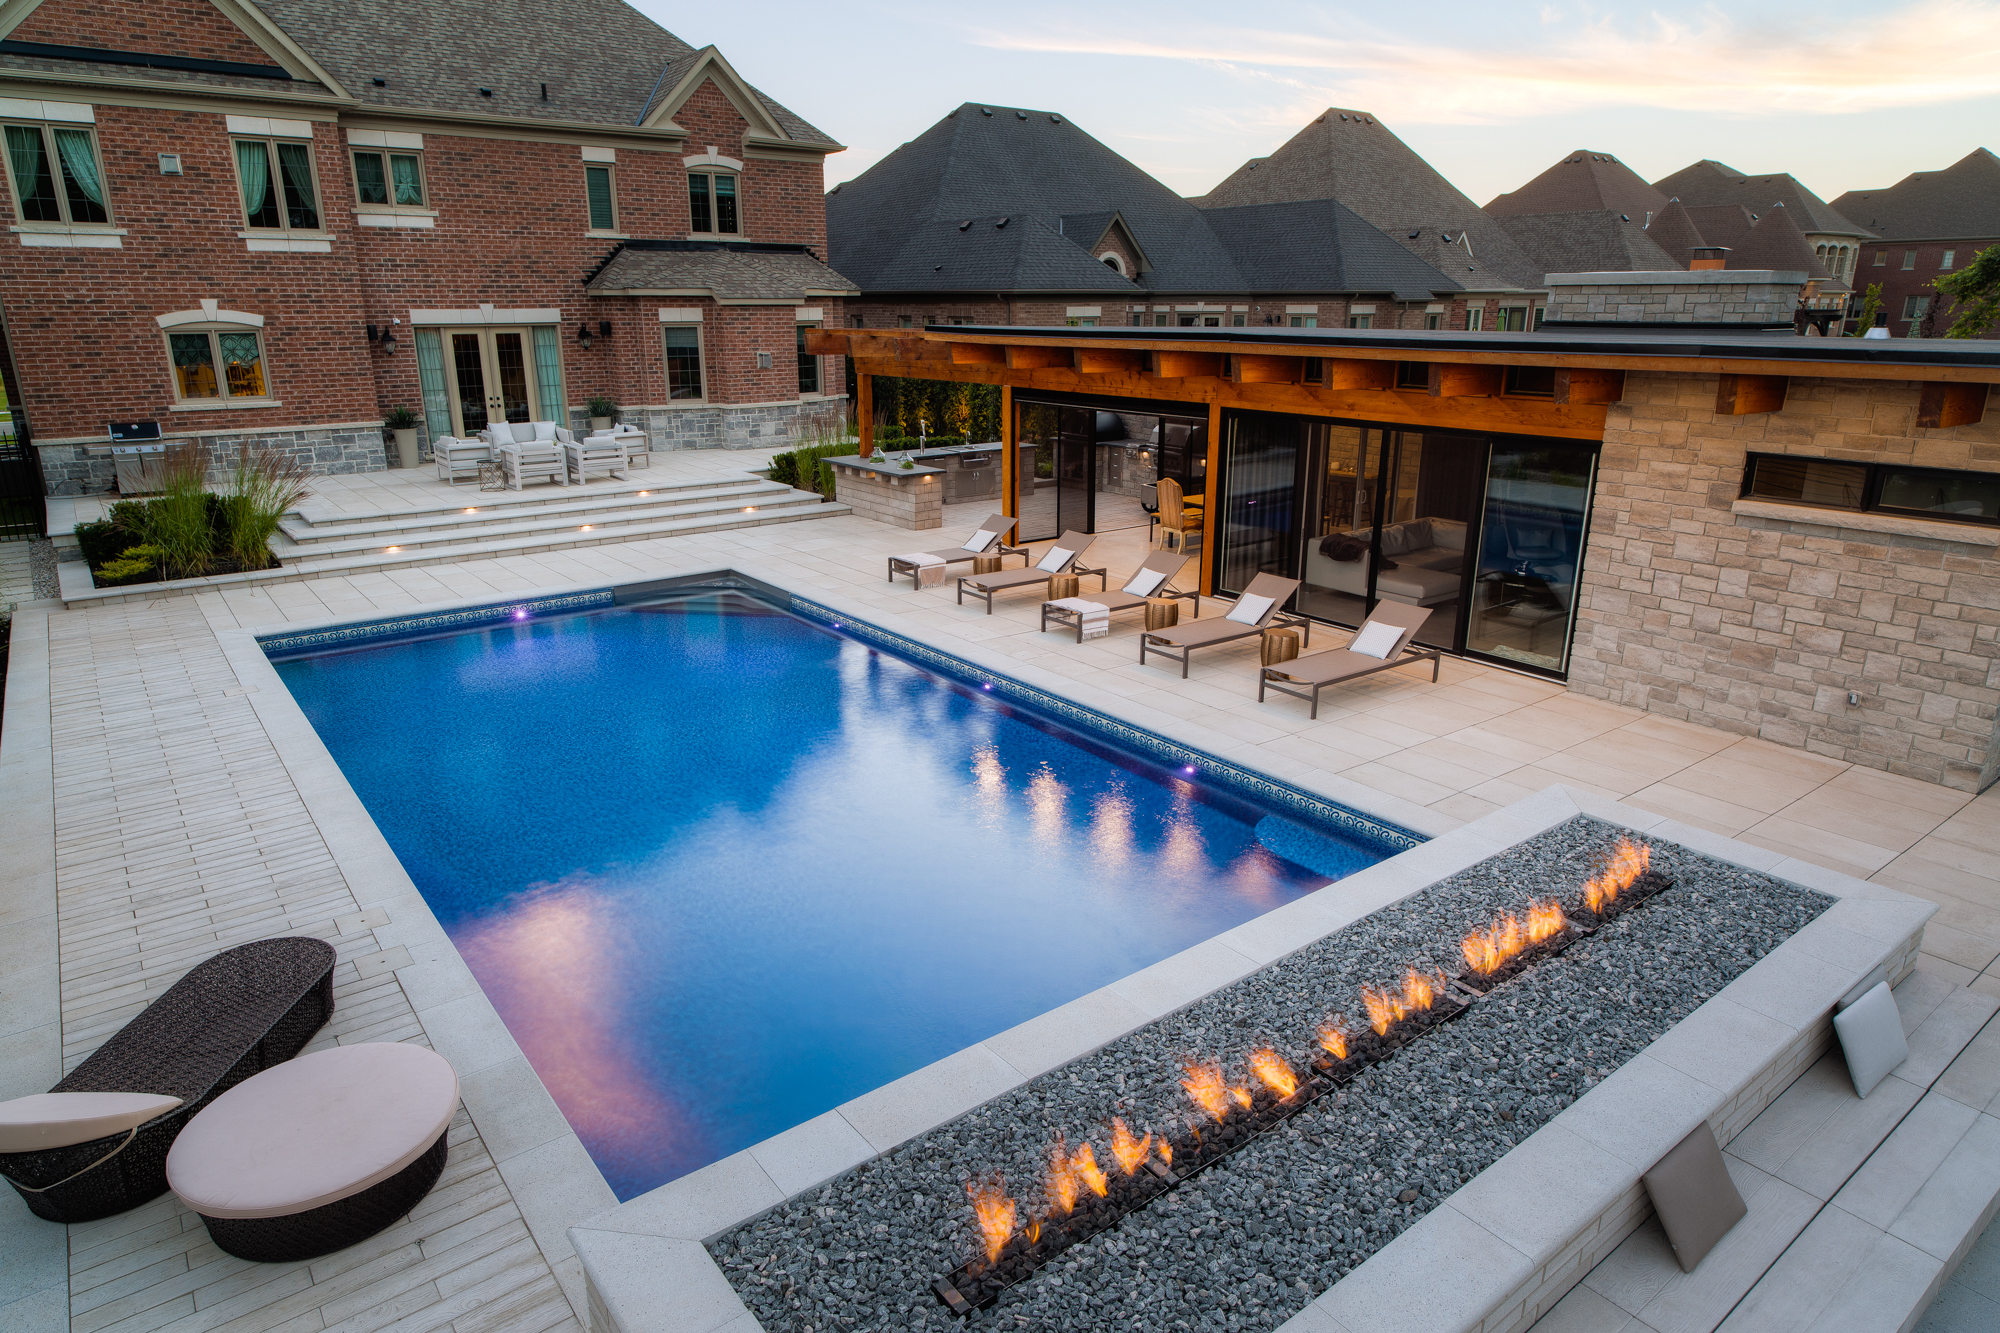 A backyard pool and patio with outdoor fireplace and furniture